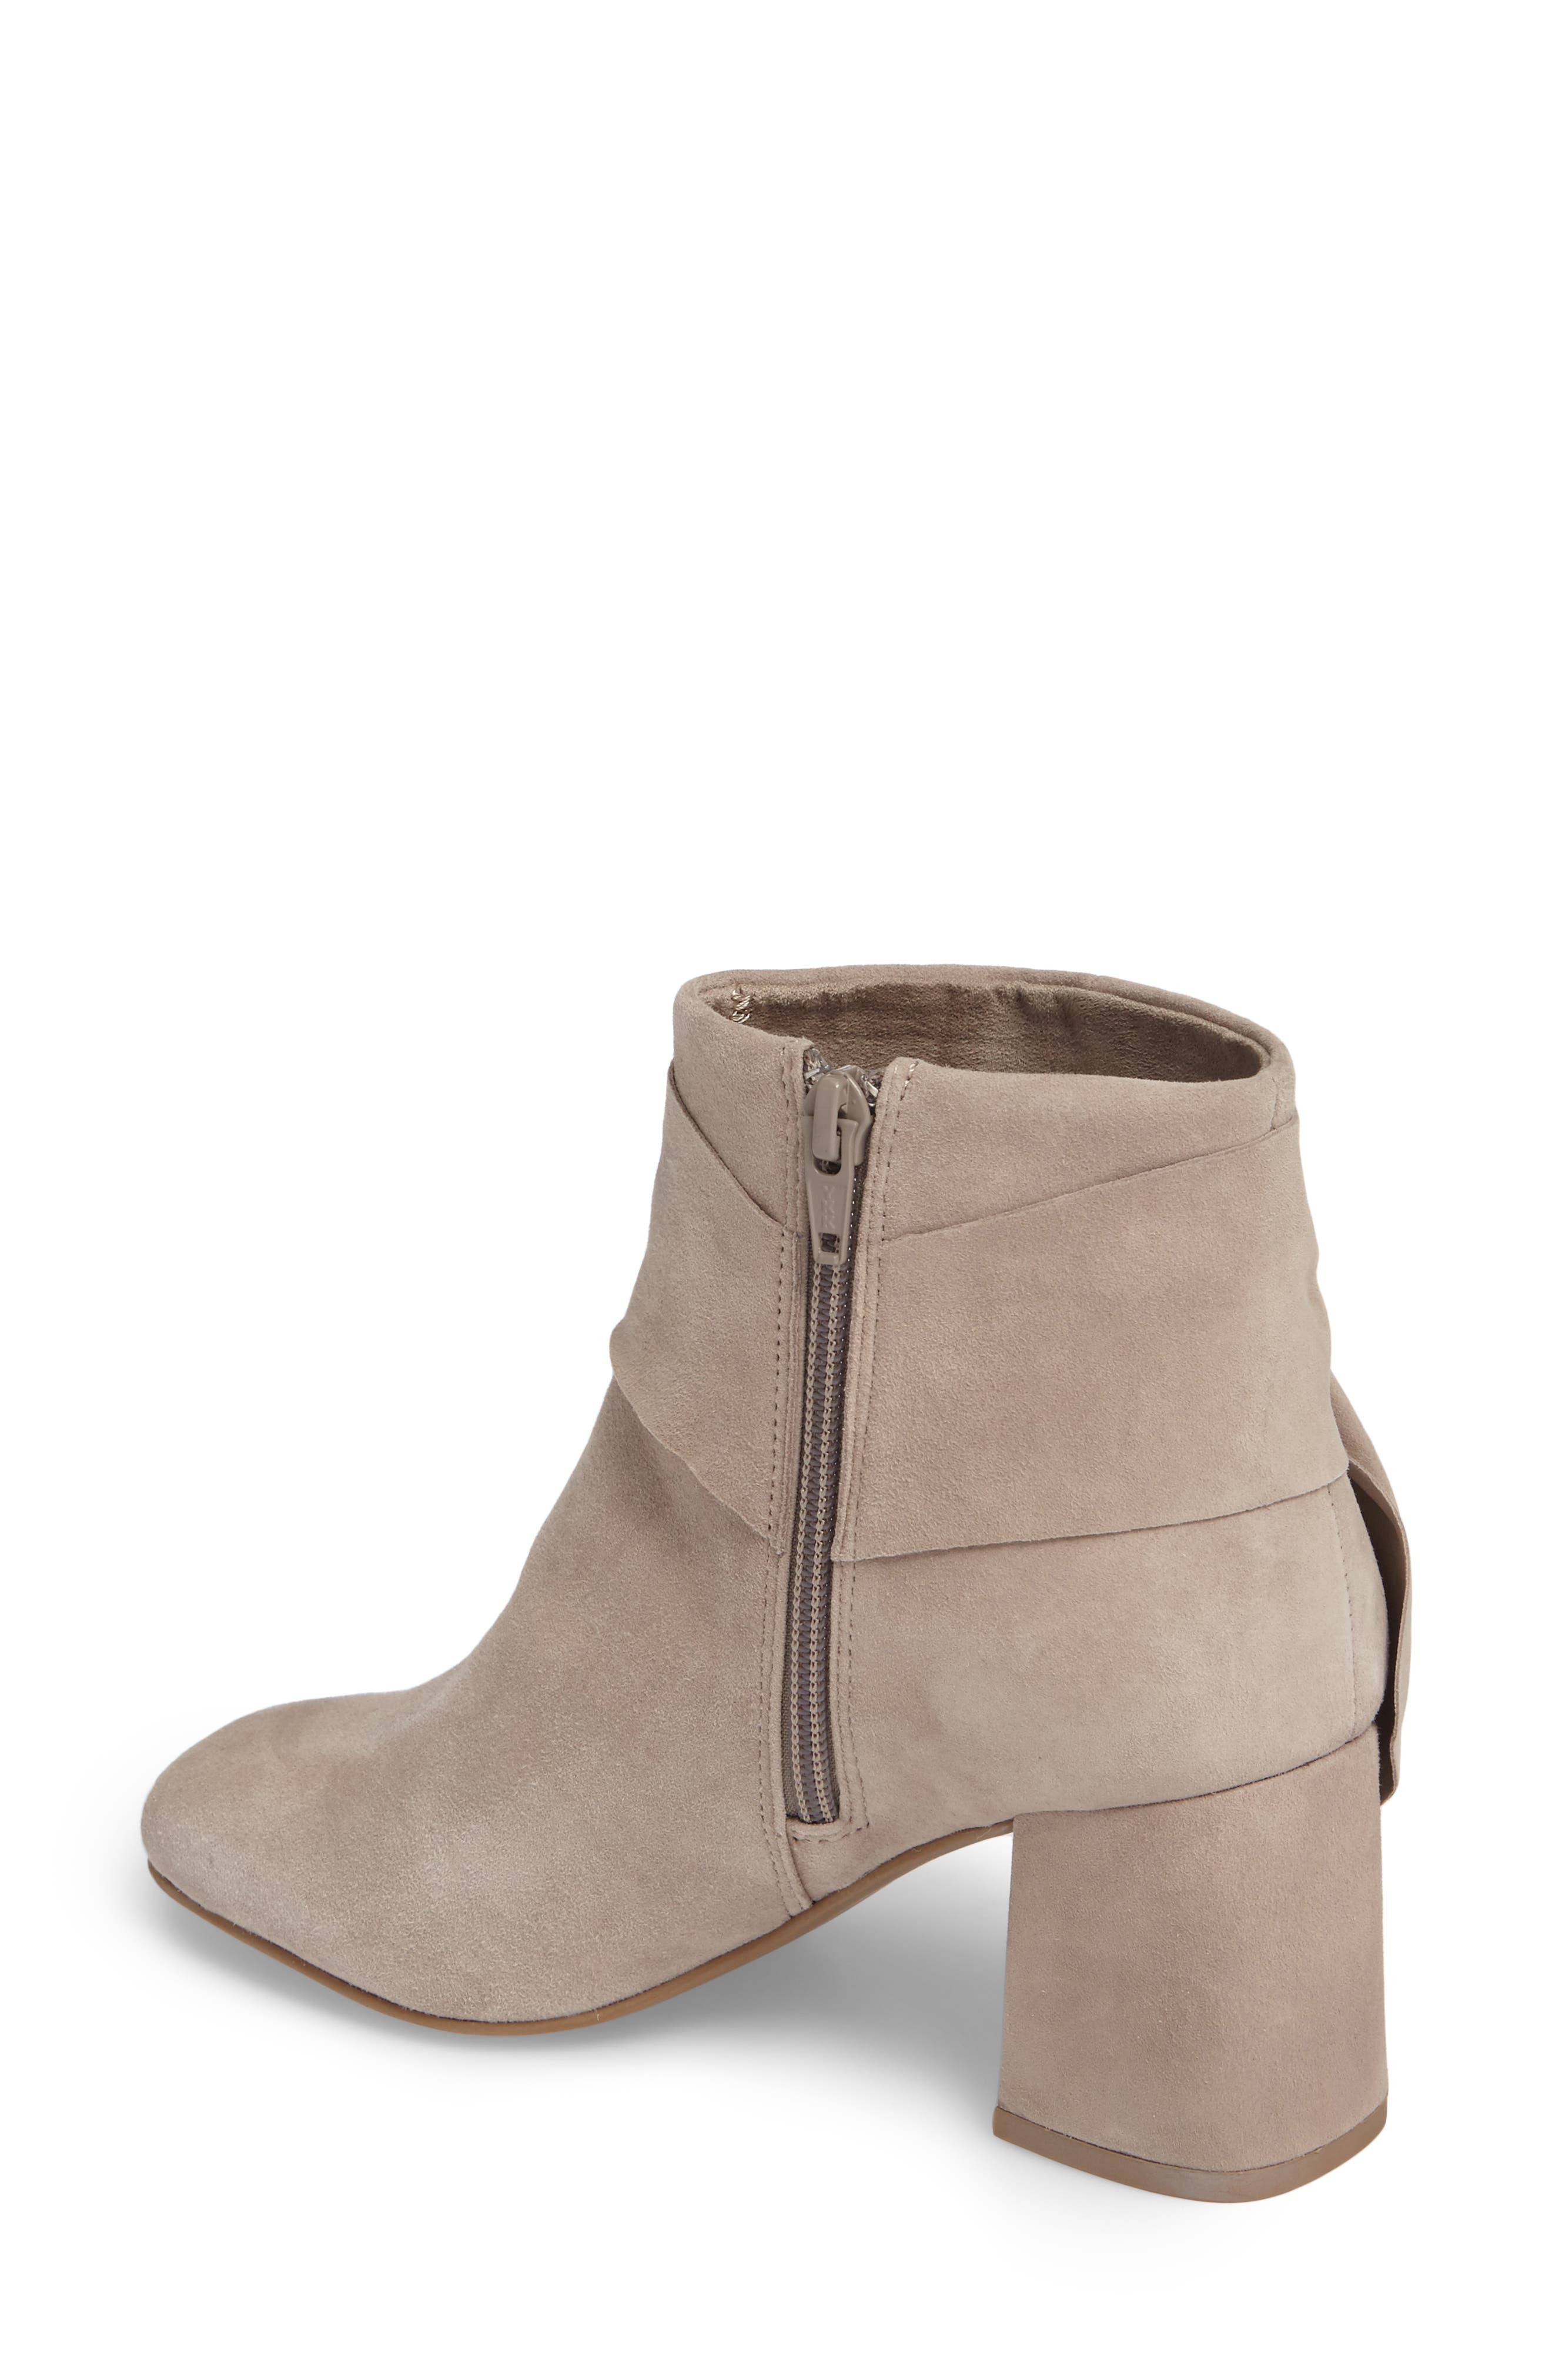 Catwalk Bootie,                             Alternate thumbnail 2, color,                             Taupe Suede